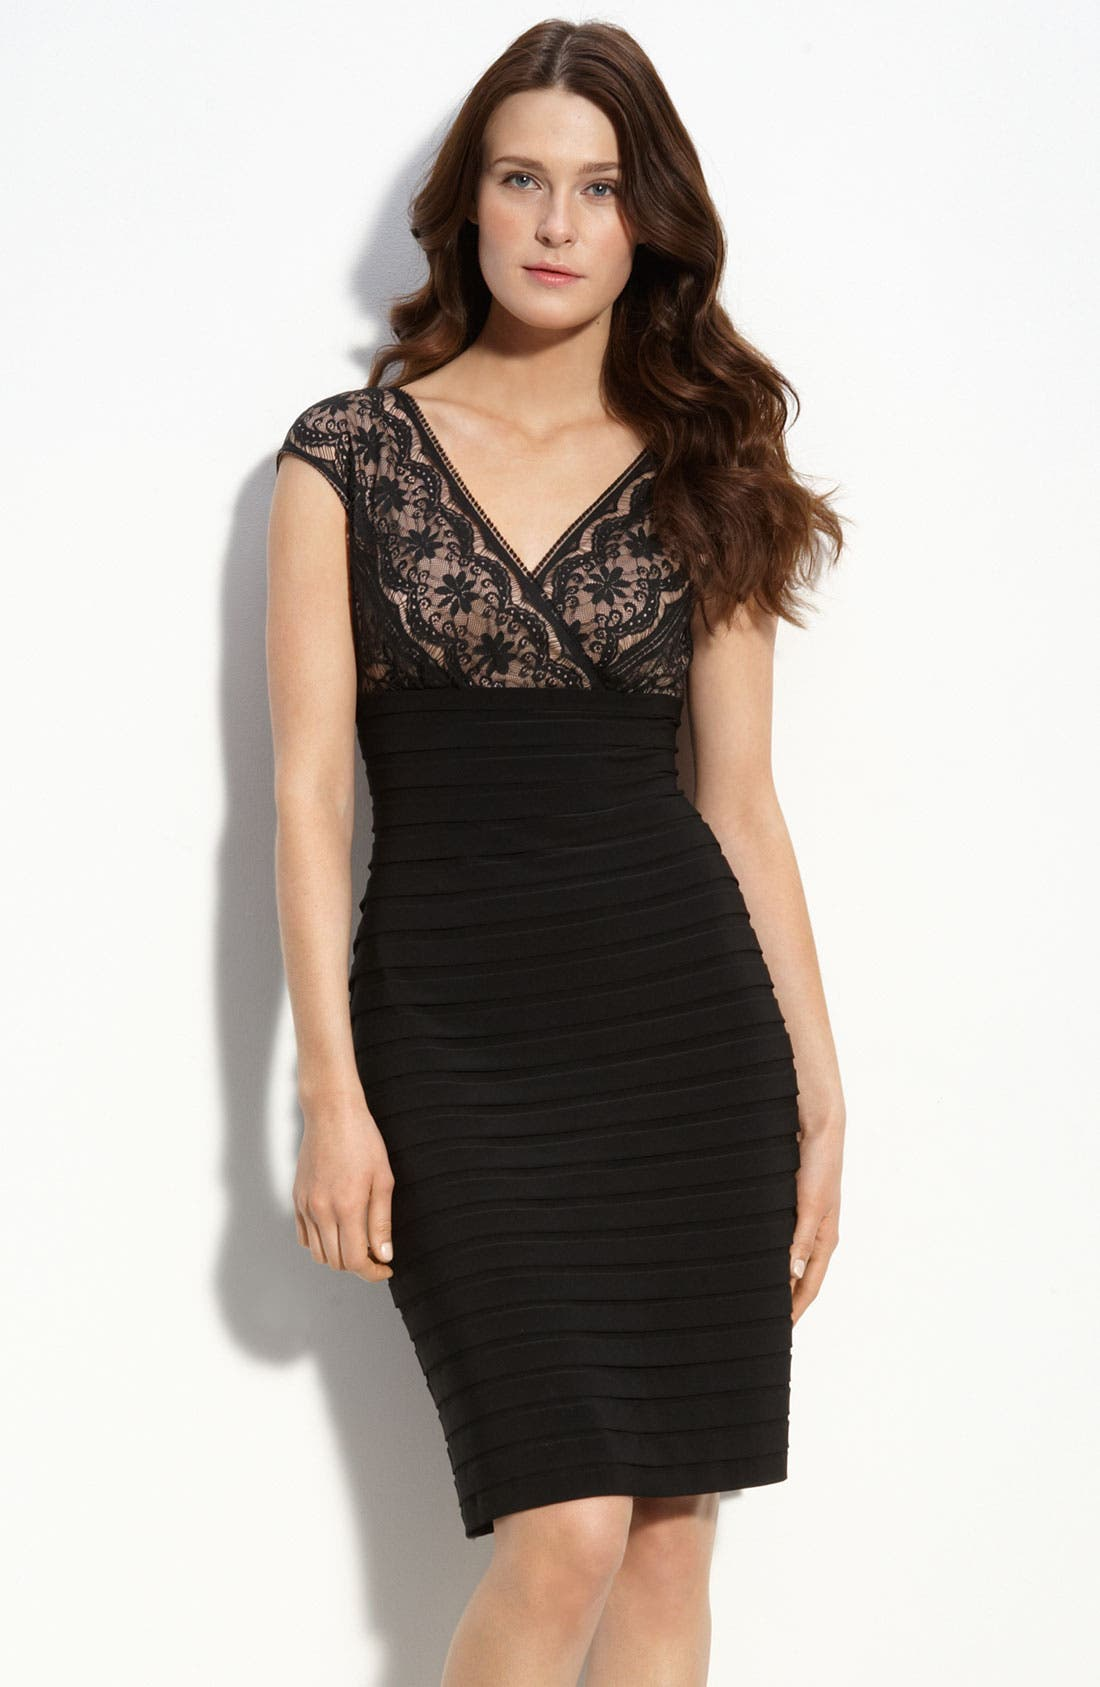 Alternate Image 1 Selected - Adrianna Papell Lace & Shutter Pleat Dress (Petite)